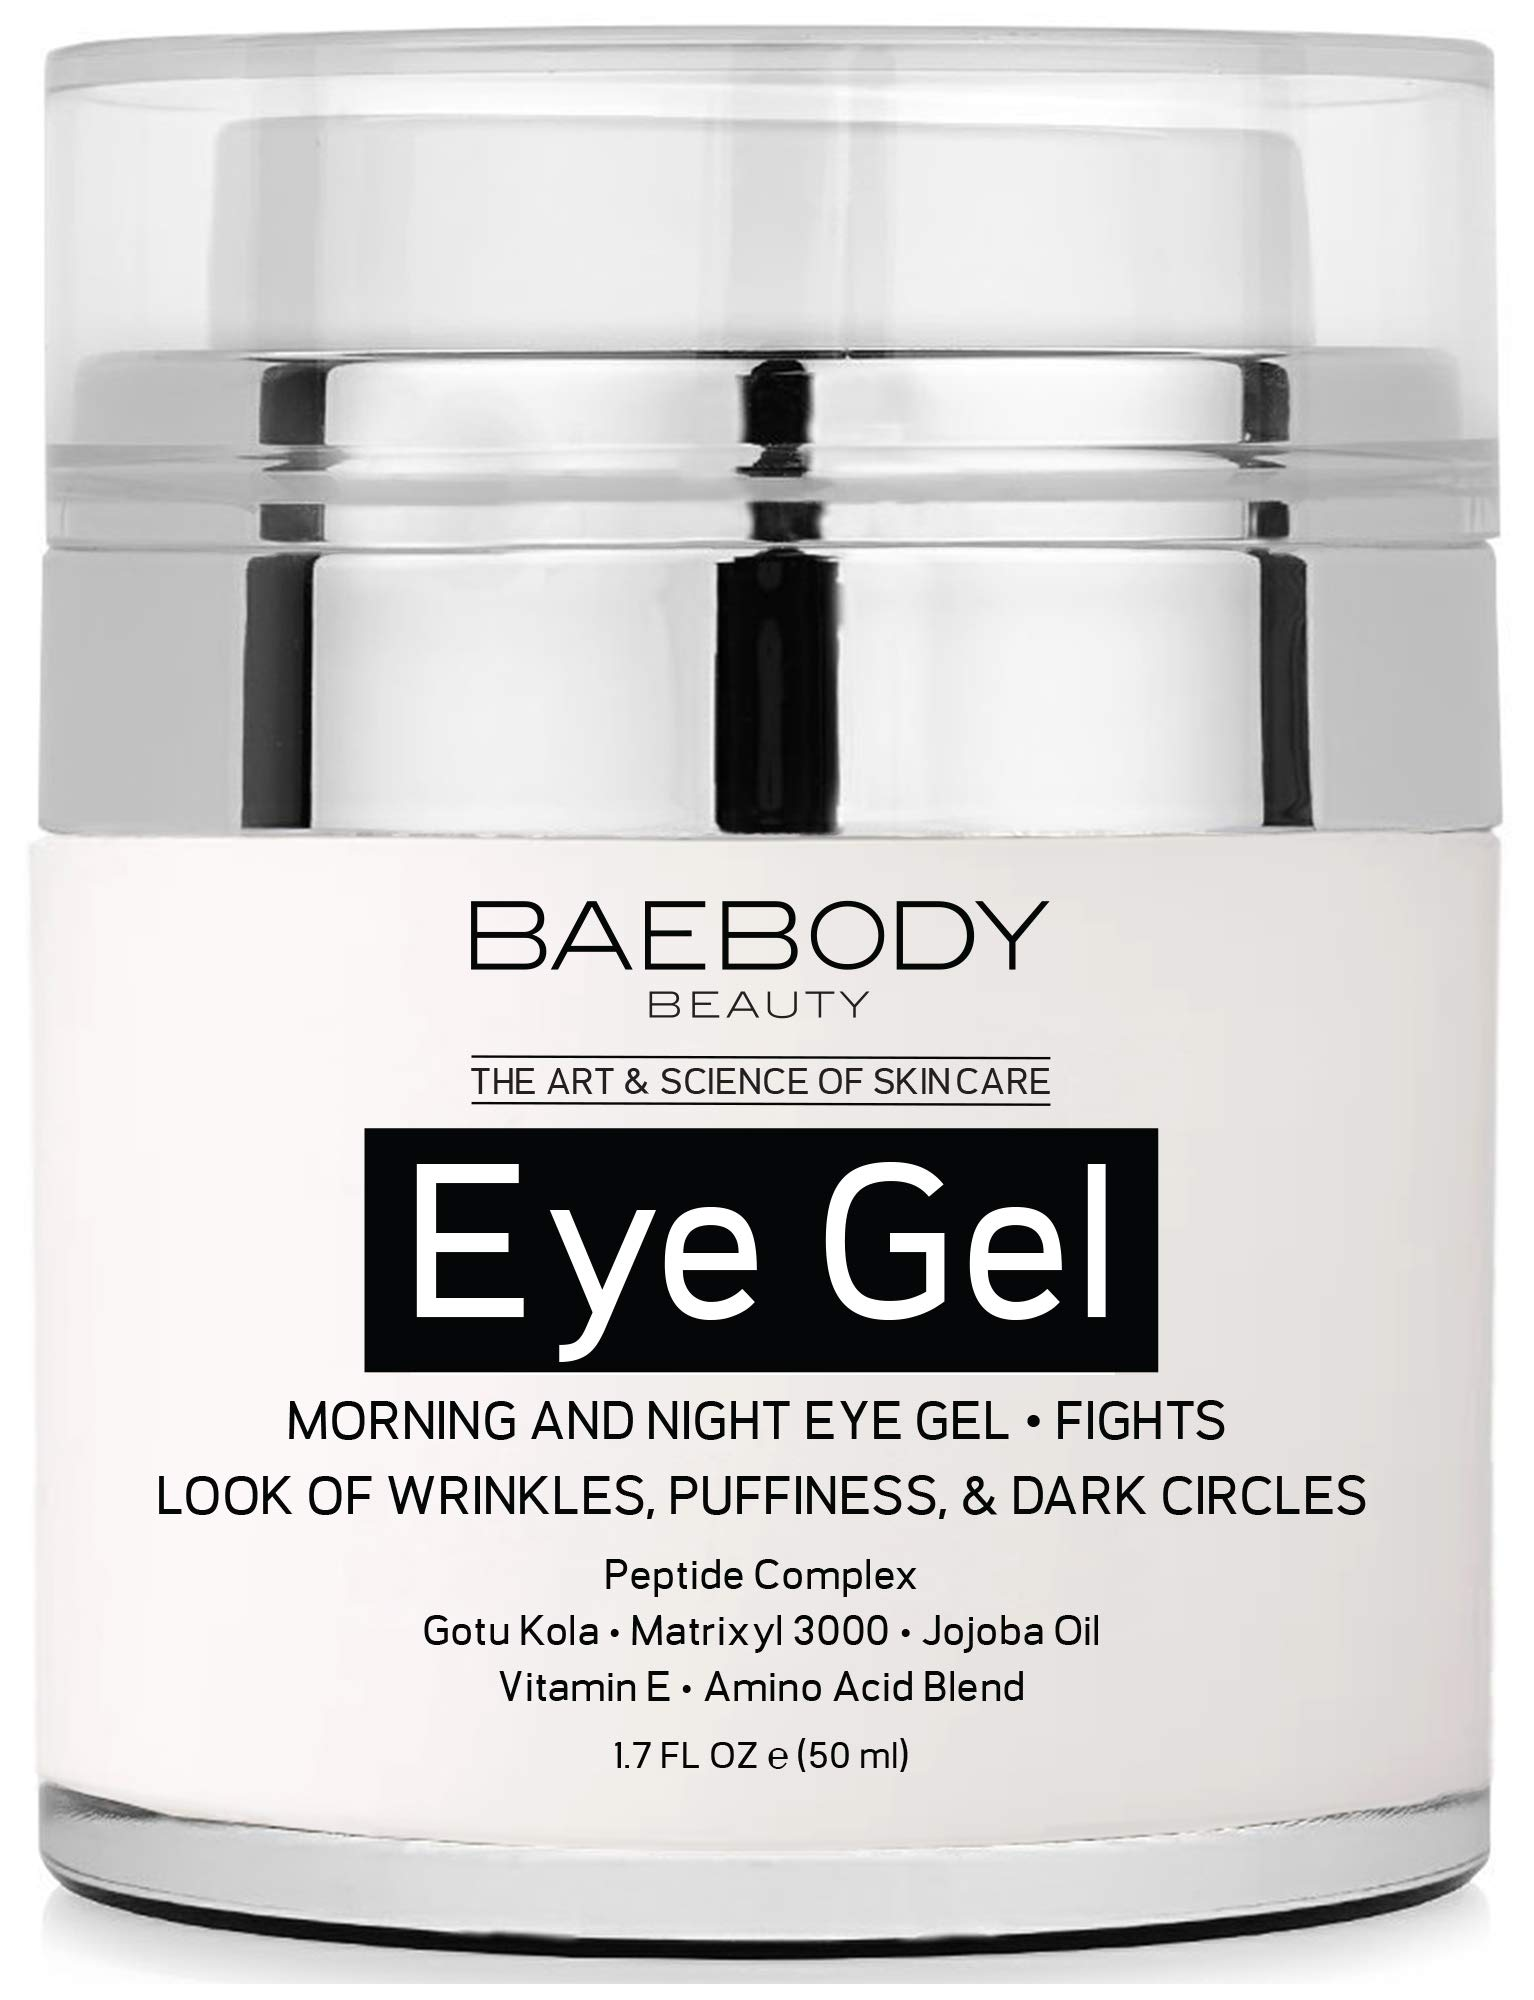 Baebody Eye Gel for Appearance of Dark Circles, Puffiness, Wrinkles and Bags - for Under and Around Eyes - 1.7 fl oz (50ml). by Baebody